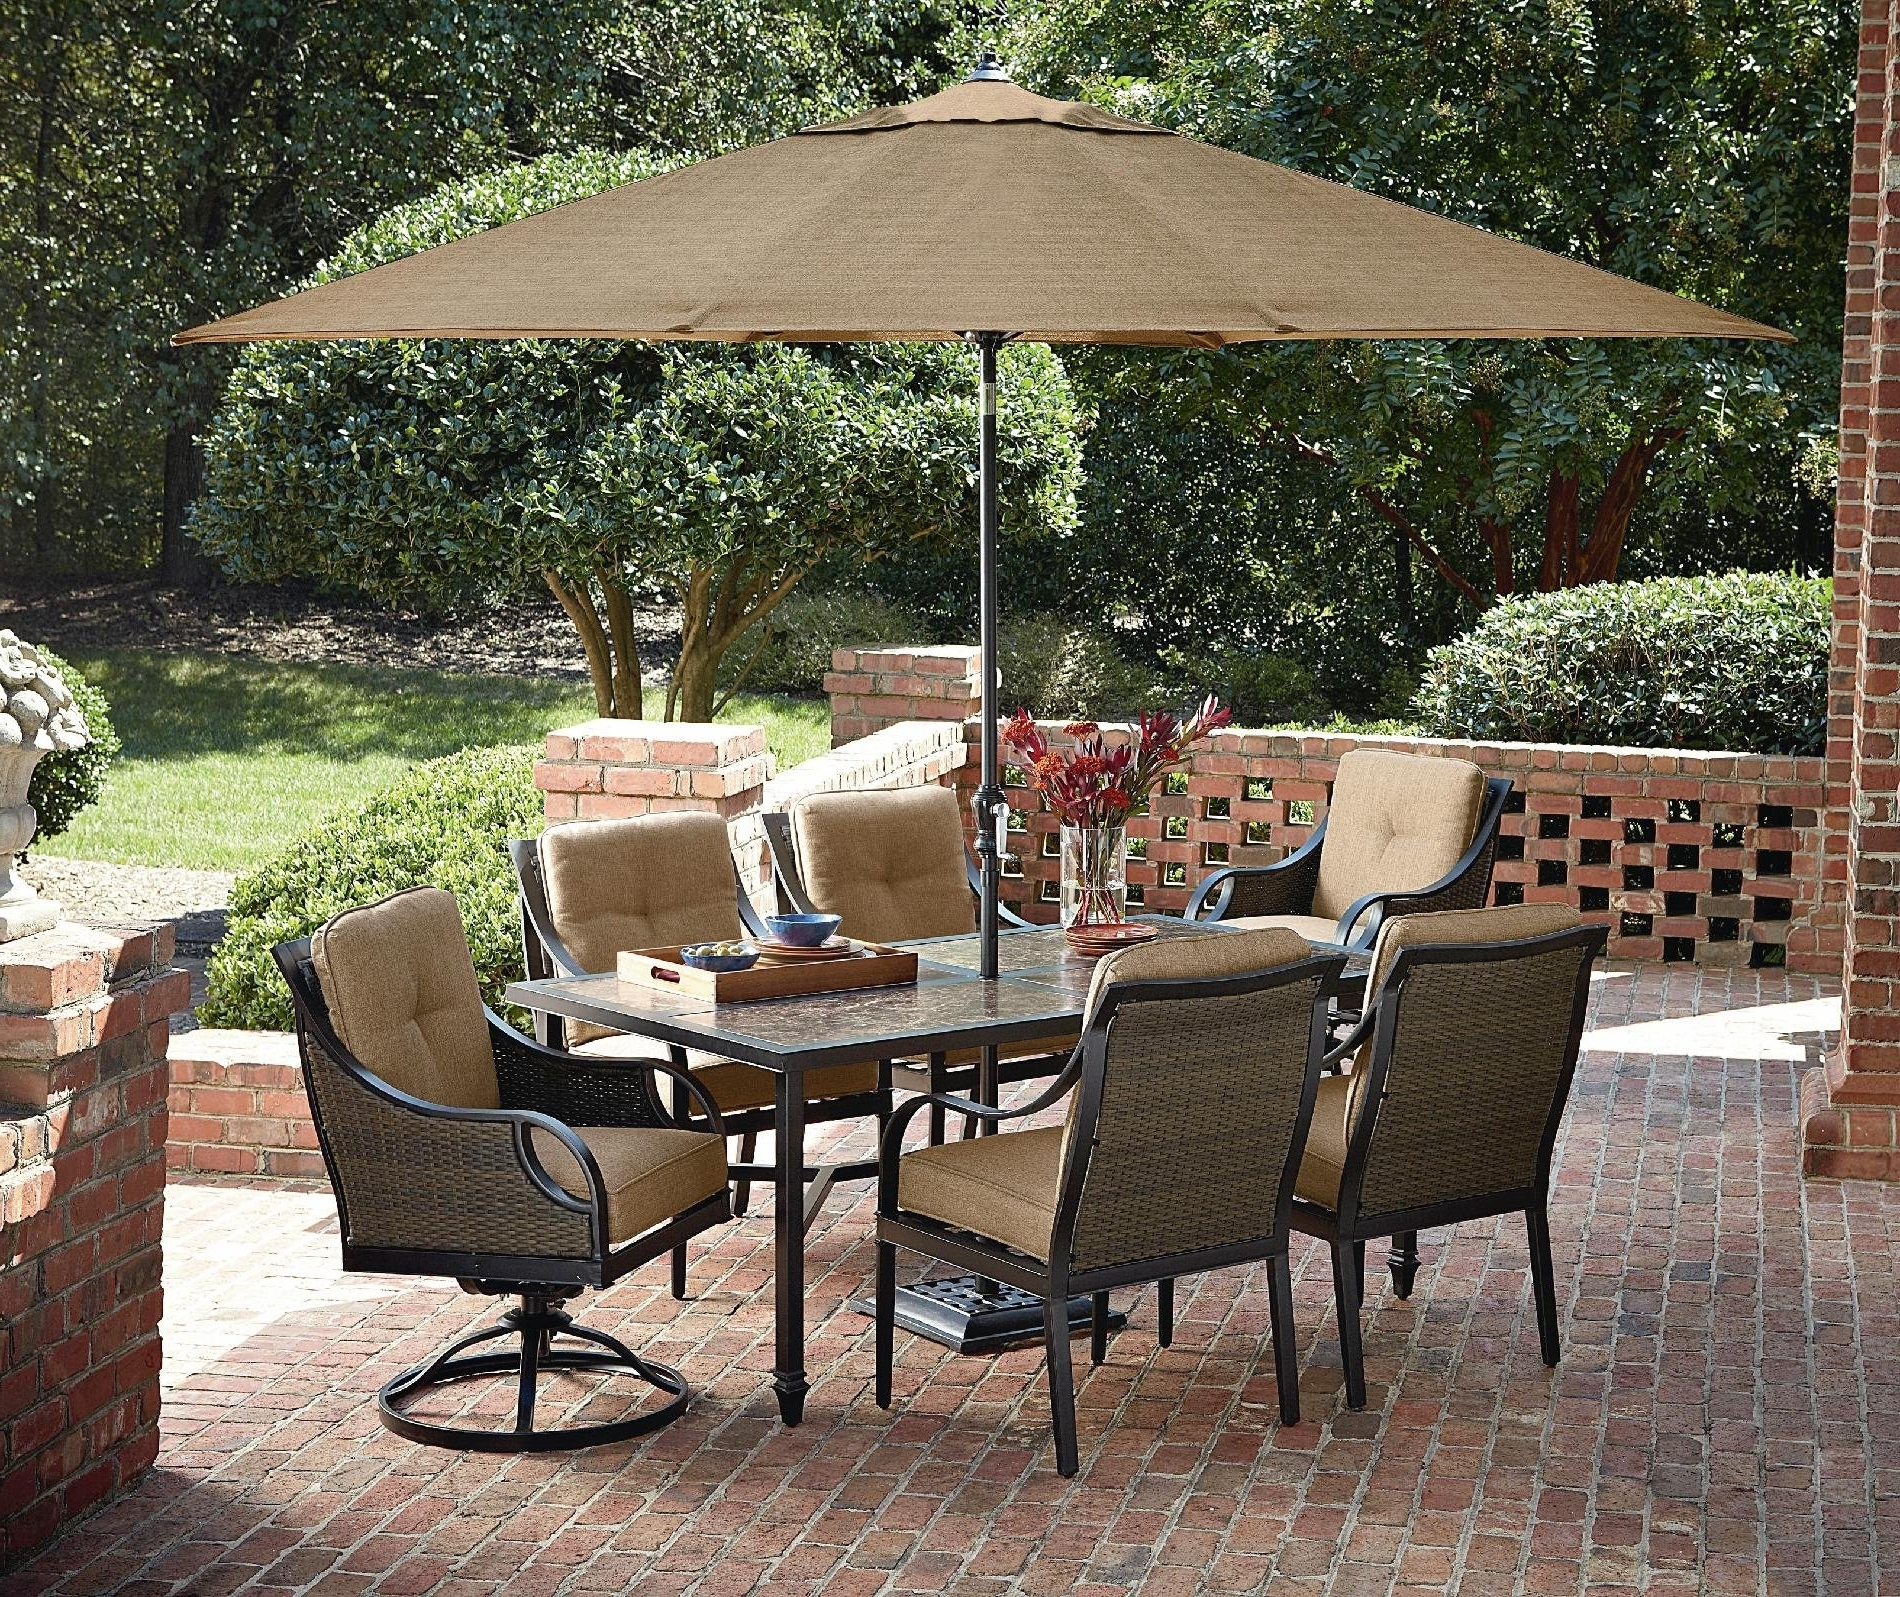 Sears Patio Furniture Conversation Sets Pertaining To Trendy Eye Patio Sears Furniture Ty Pennington For Conversation Sets (View 9 of 20)